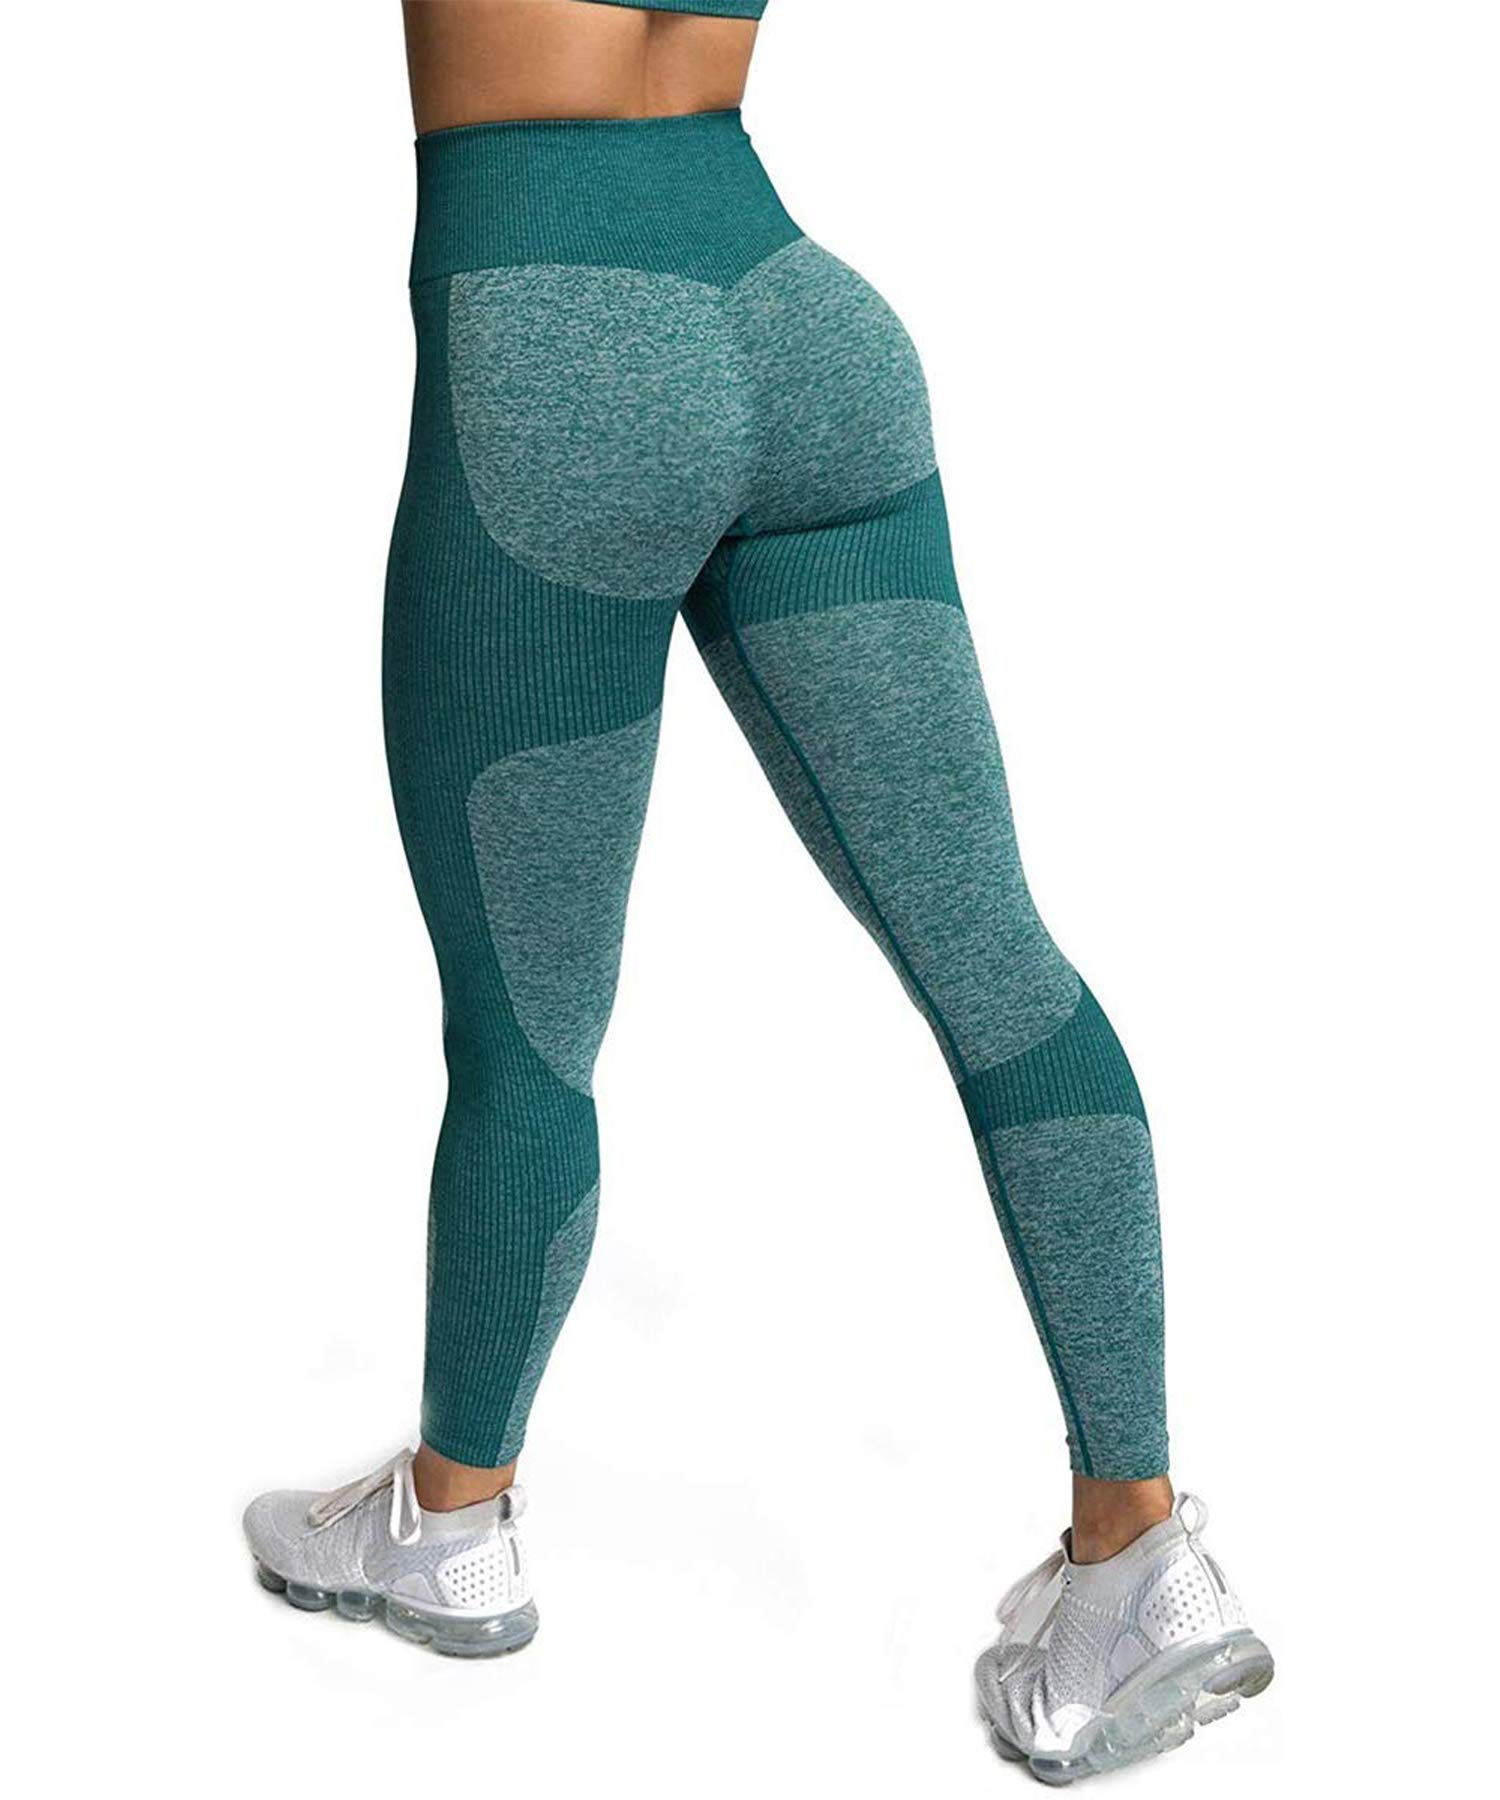 CFR Womens High Waisted Leggings Seamless Tight Workout Leggings Gym Yoga Pants Tummy Control Sports Compression